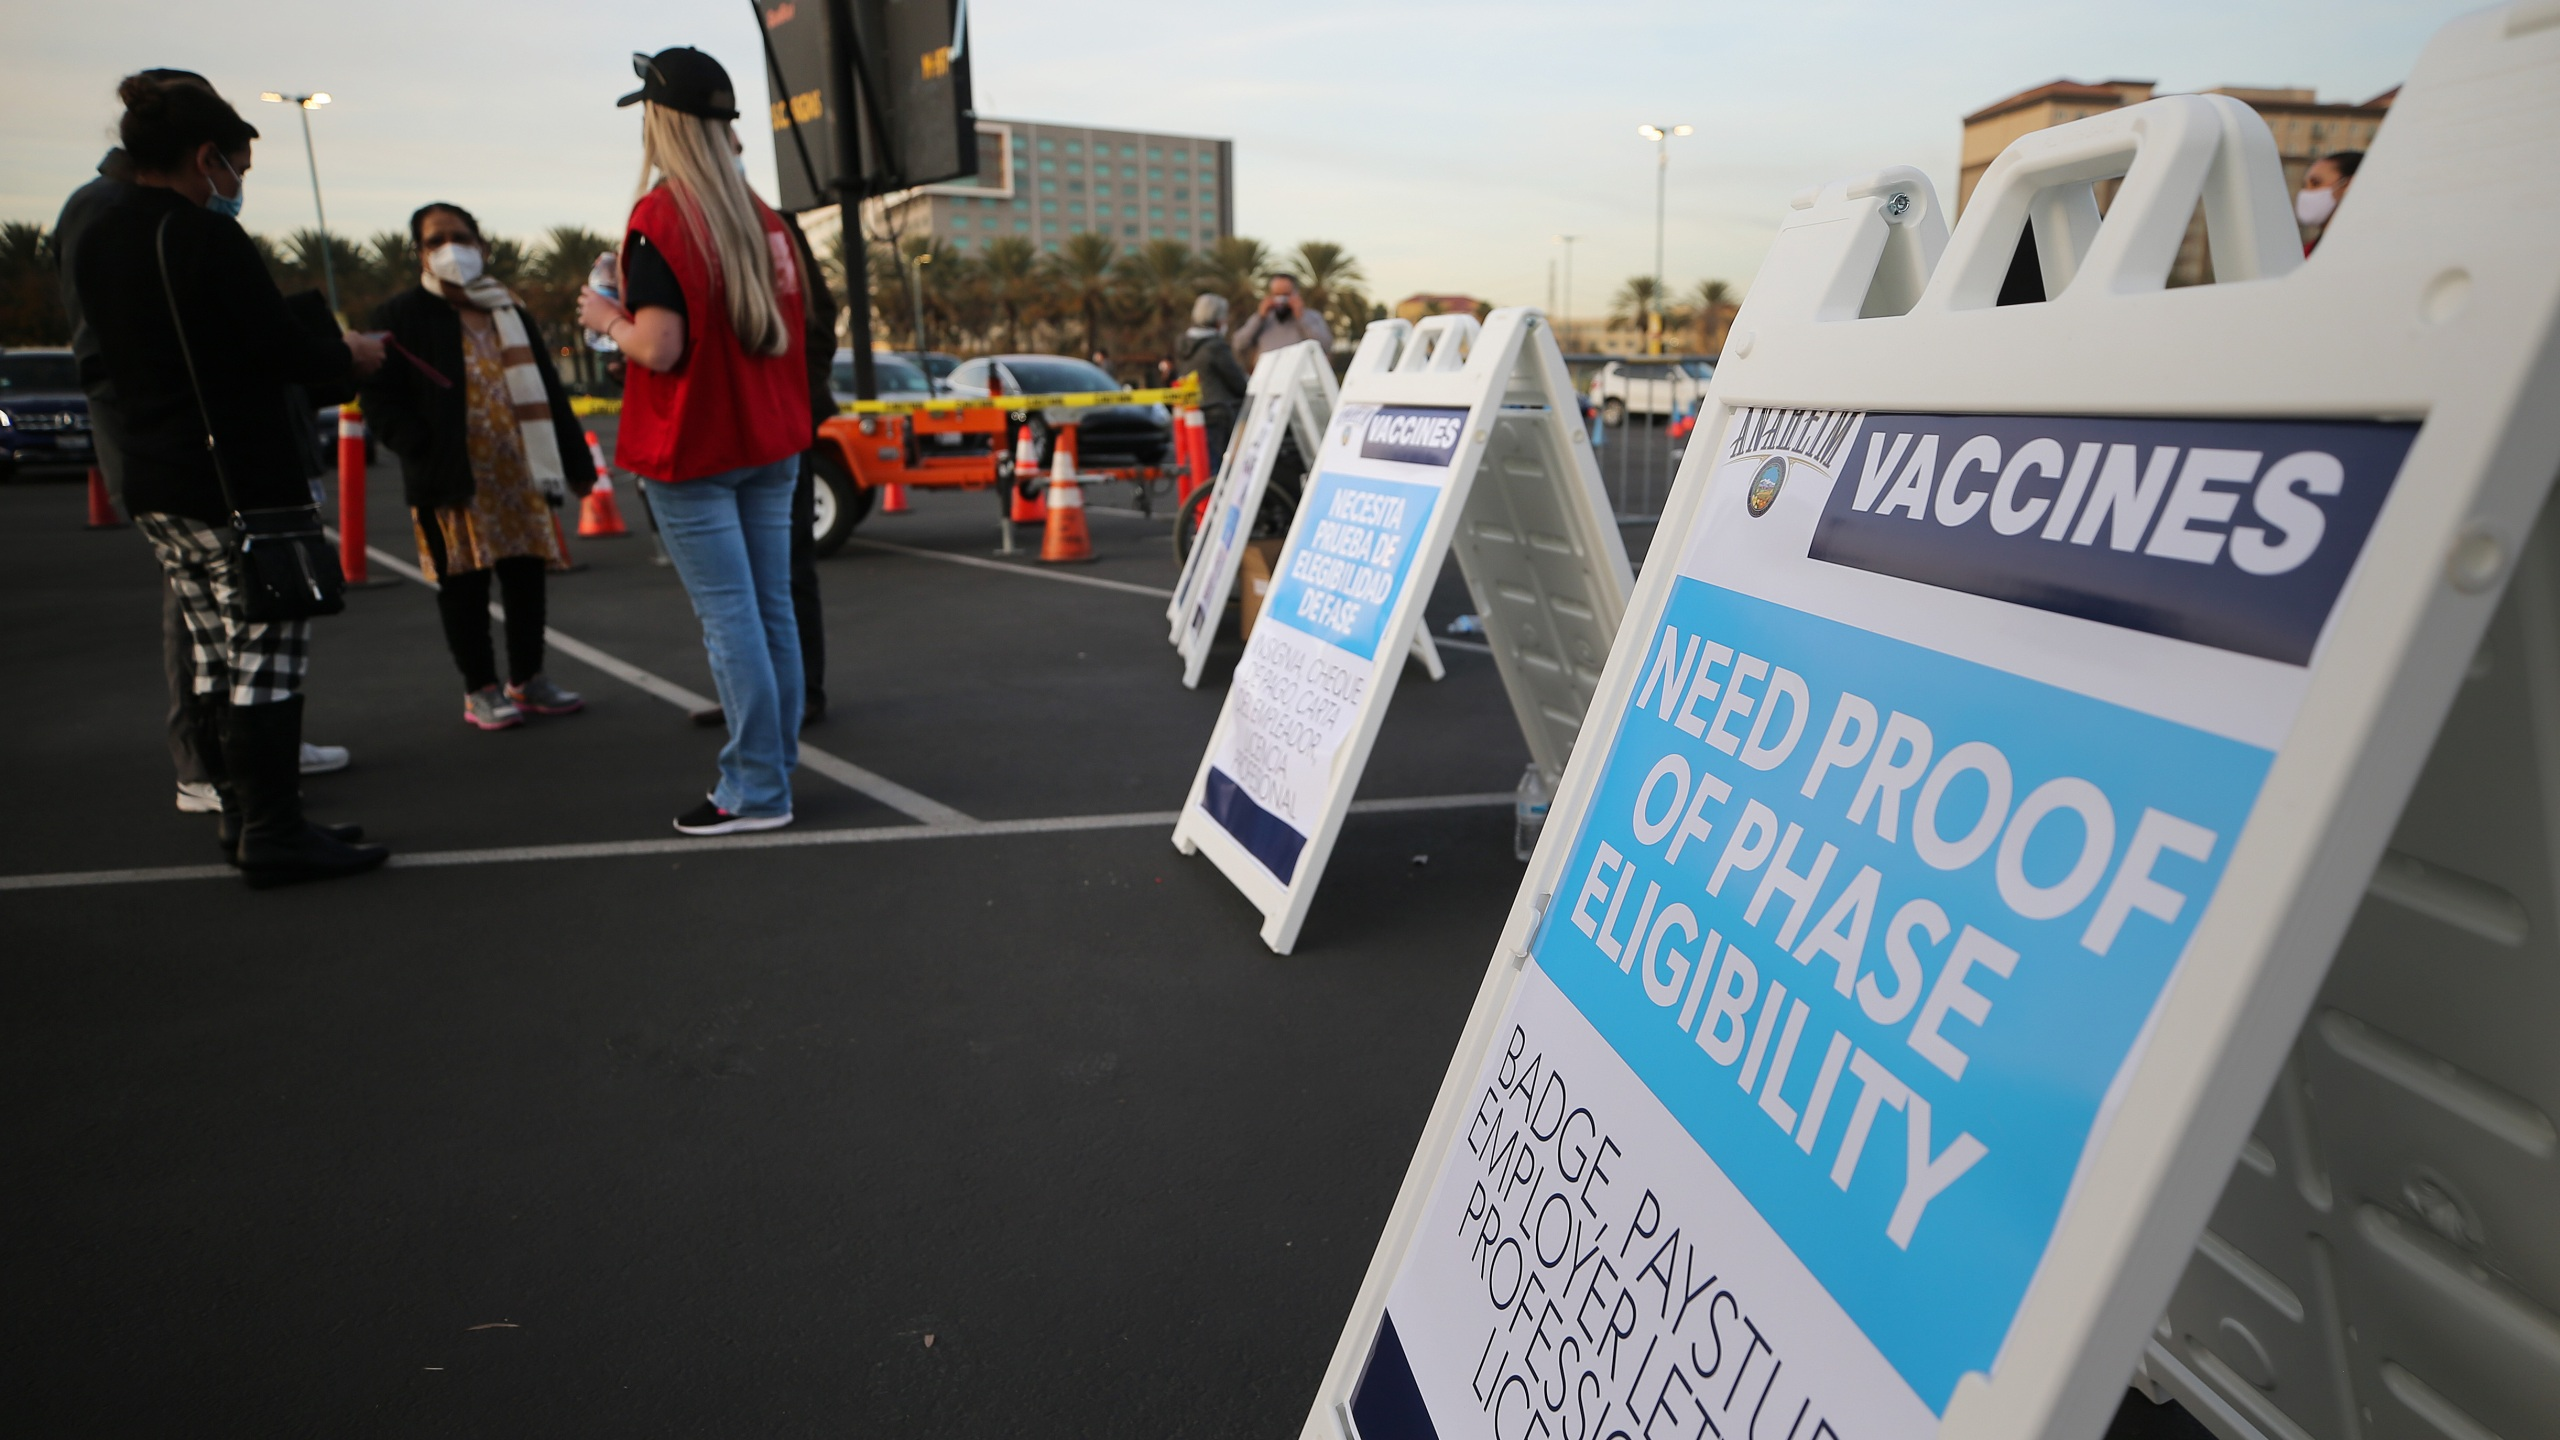 A sign is posted about proof of eligibility at a mass COVID-19 vaccination site in a parking lot of Disneyland Resort in Anaheim on Jan. 13, 2021. (Mario Tama / Getty Images)